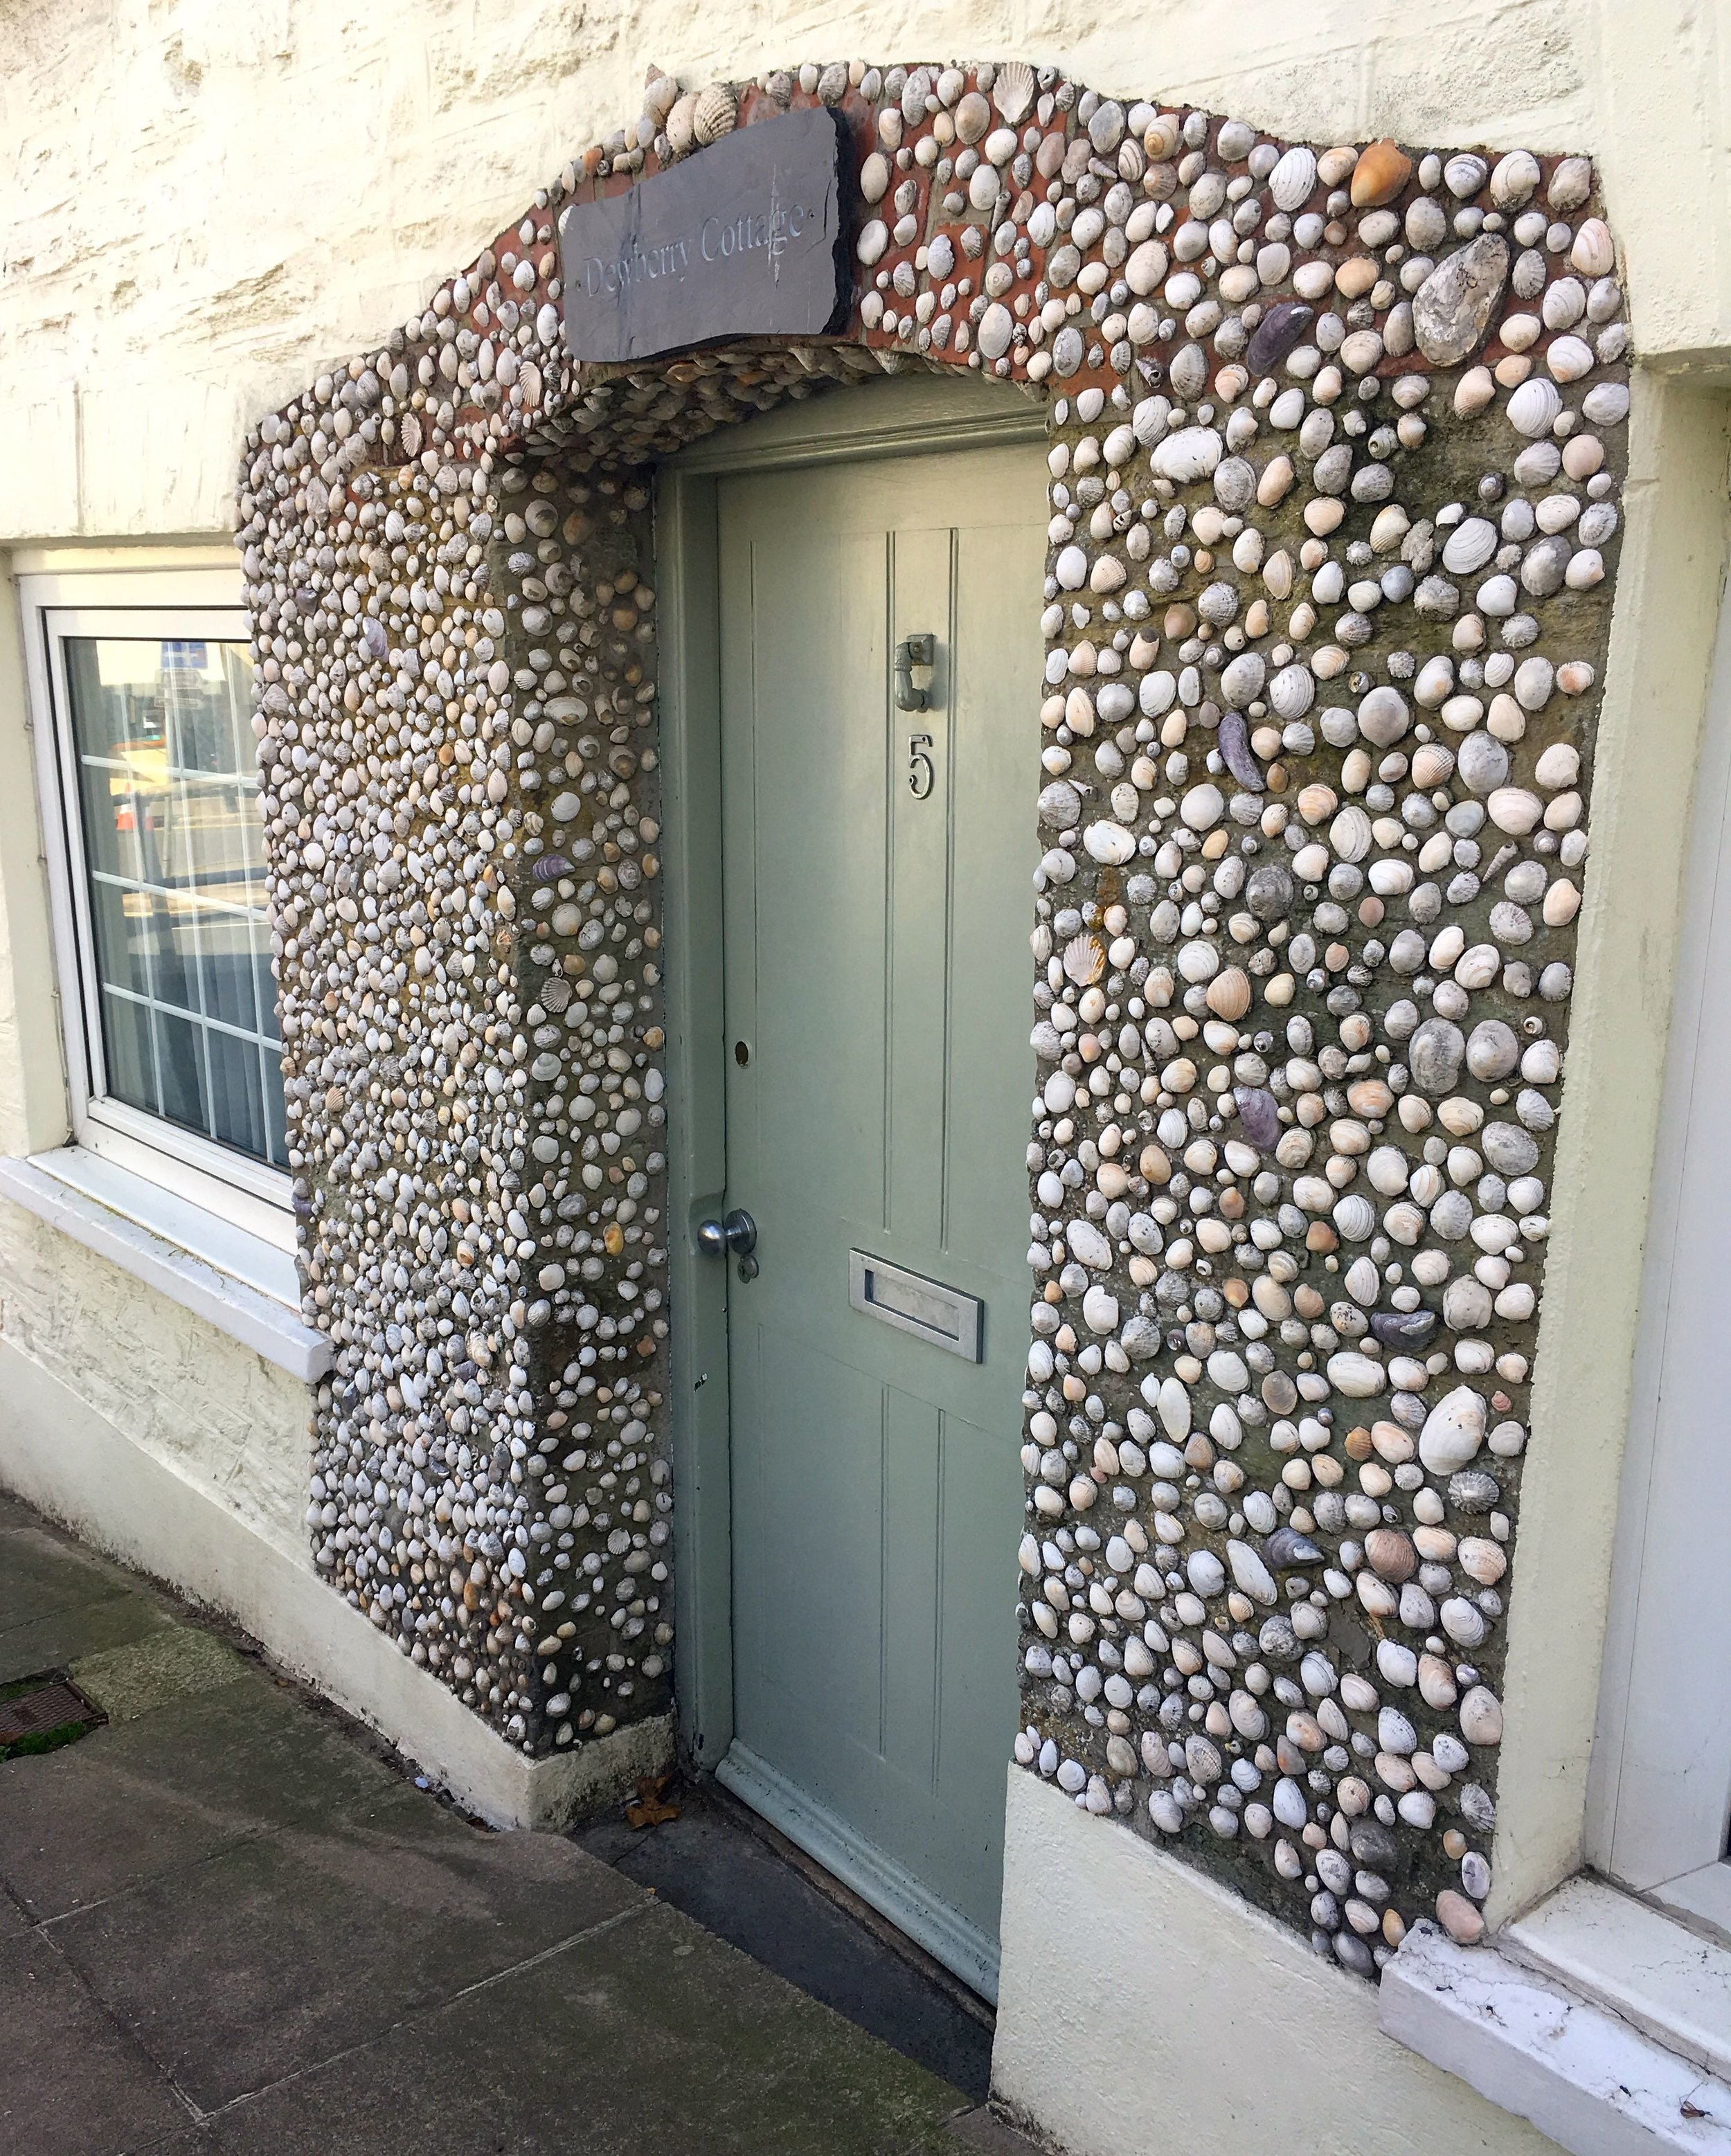 A Devonian front door, with pebbles